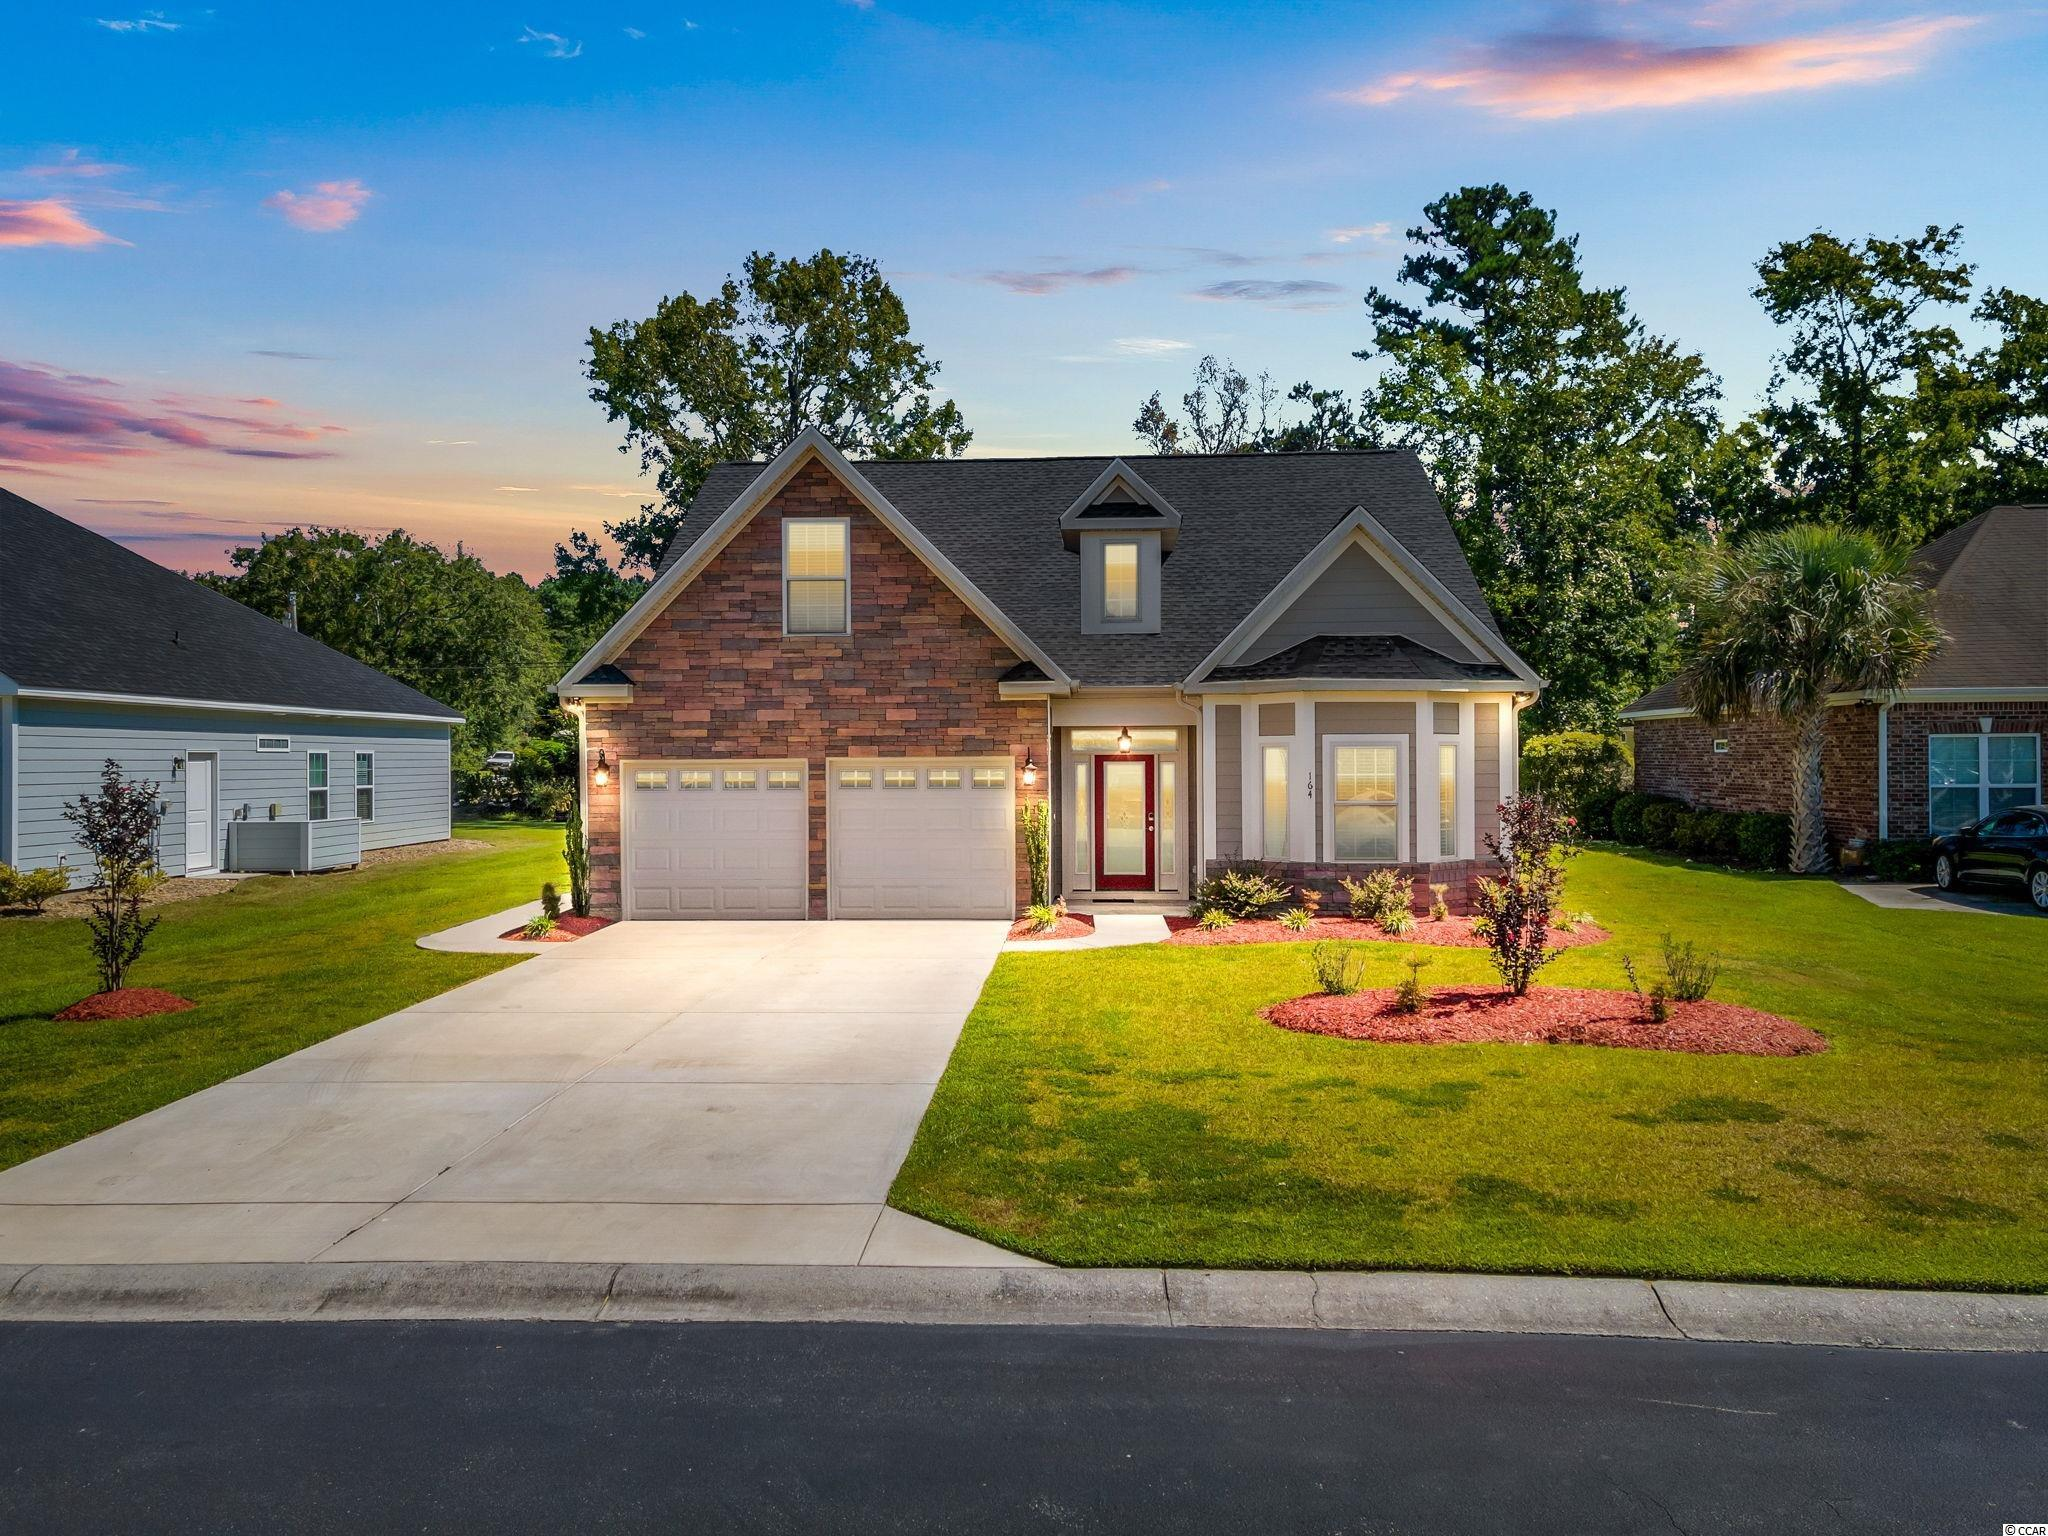 This 3 bed, 3 full bath with bonus room~ custom home is located in the prestigious and private community of Windsong. Minutes from Historic Little River Waterfront, along the Intracoastal Waterway and from Calabash and the beaches of Brunswick county. Carefully designed and finished by it's one owner since completion in 2019. You are welcomed into the foyer with 18 ft. cathedral ceilings and an abundance of light that flows through the entire home, an open floor plan with large, arched windows, detailed trim and double panel doors throughout.  Each of the bedrooms have large closets and ceiling fans, ceiling fans in every room including the primary suite, two in the living area and bonus room. The large primary suite with double tray ceiling and walk in closet includes an en suite with double sinks, a custom tile shower with glass doors and a whirlpool tub.  There is plenty of space in the living area for entertaining as it is open to the kitchen equipped with top of the line GE SS appliances, granite counter tops, plenty of storage and counter space. From the kitchen you can easily serve to the dining area or the grilling area on the patio outside. Upstairs is a never used bonus room and full bathroom, waiting for you to make it your own! No detail spared in this space either! Notice there is not a straight edge in the house,  all rounded corners, even the garage. Every drawer and door in the house has the soft close feature. The tile is large plank ceramic in a lovely neutral tone sure to match all. Smart home features include a security system with cameras including, motion detection, electronic keyless entry, thermostat.  Don't wait on new construction, come see this turn key home today!